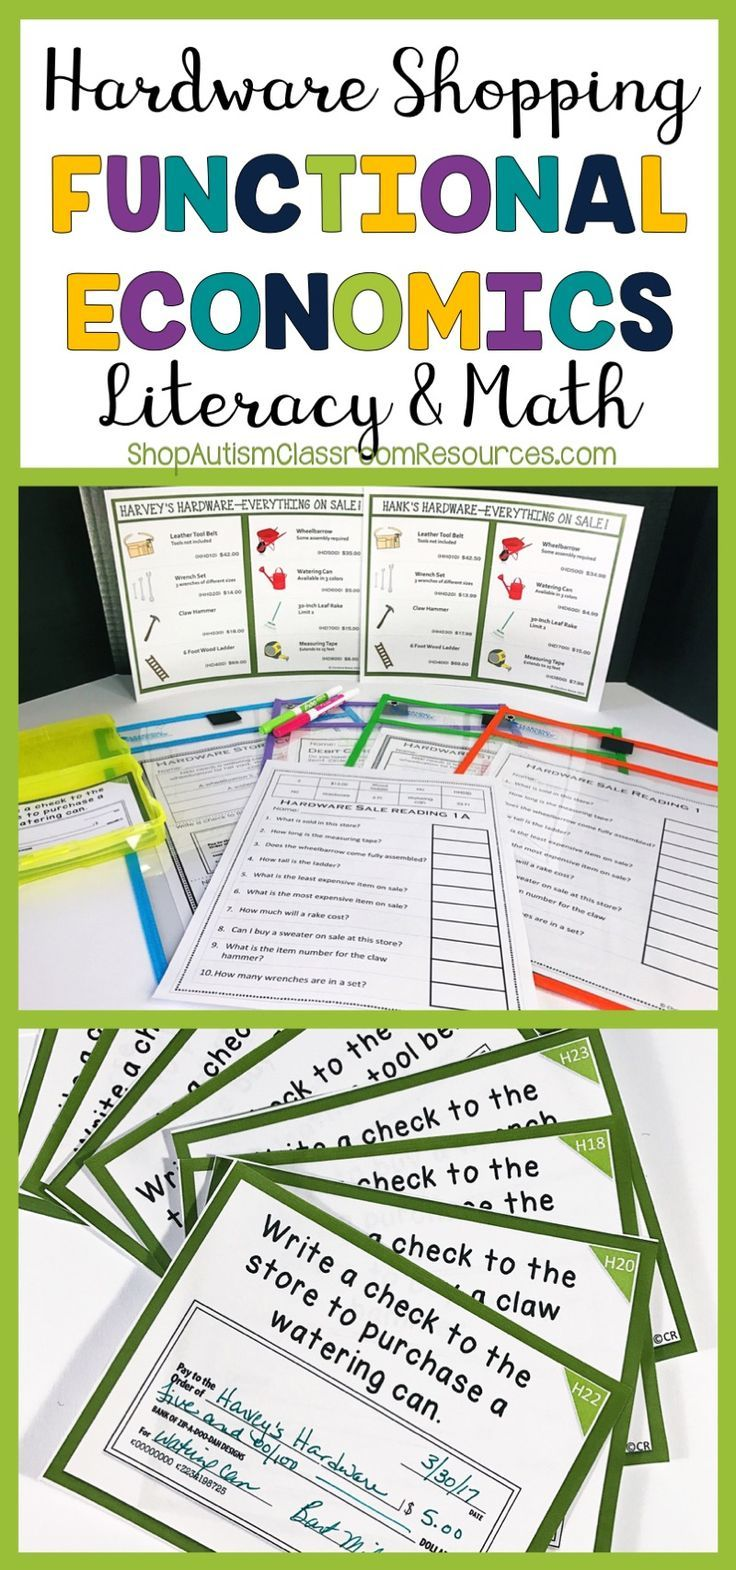 336 best Special Ed Life Skills images on Pinterest | Autism ...